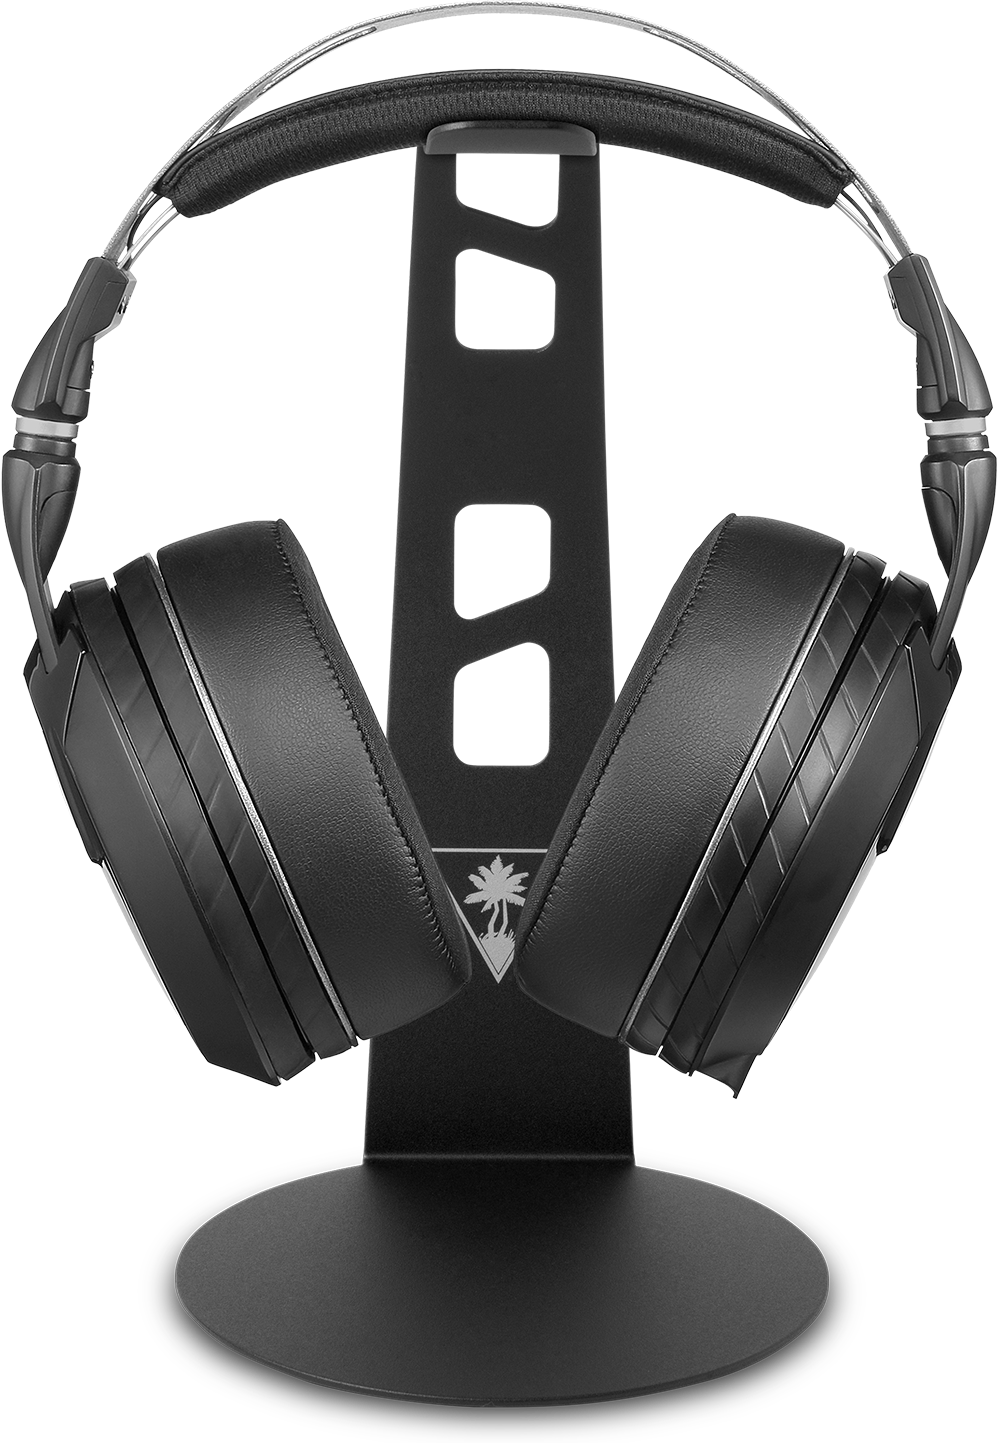 RE3o5Bf?ver=5b45 - Turtle Beach Ear Force HS2 Universal Gaming Headset Stand